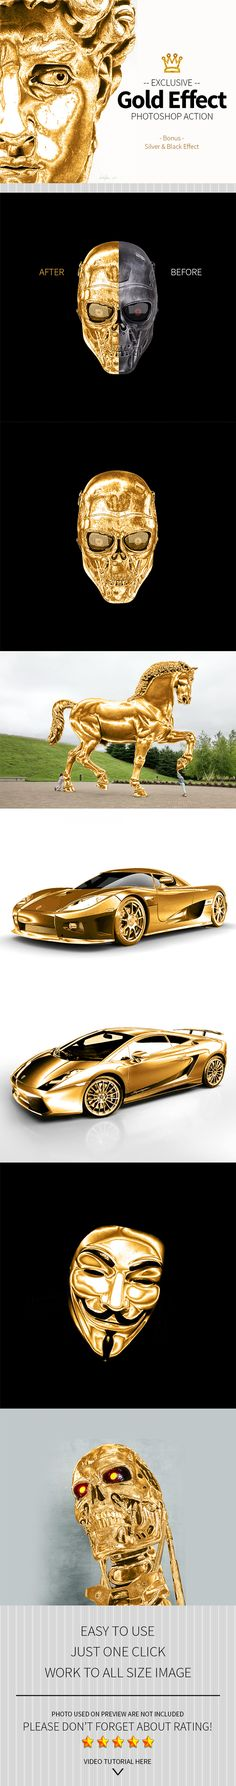 Gold Effect Photoshop Action by Kluzya